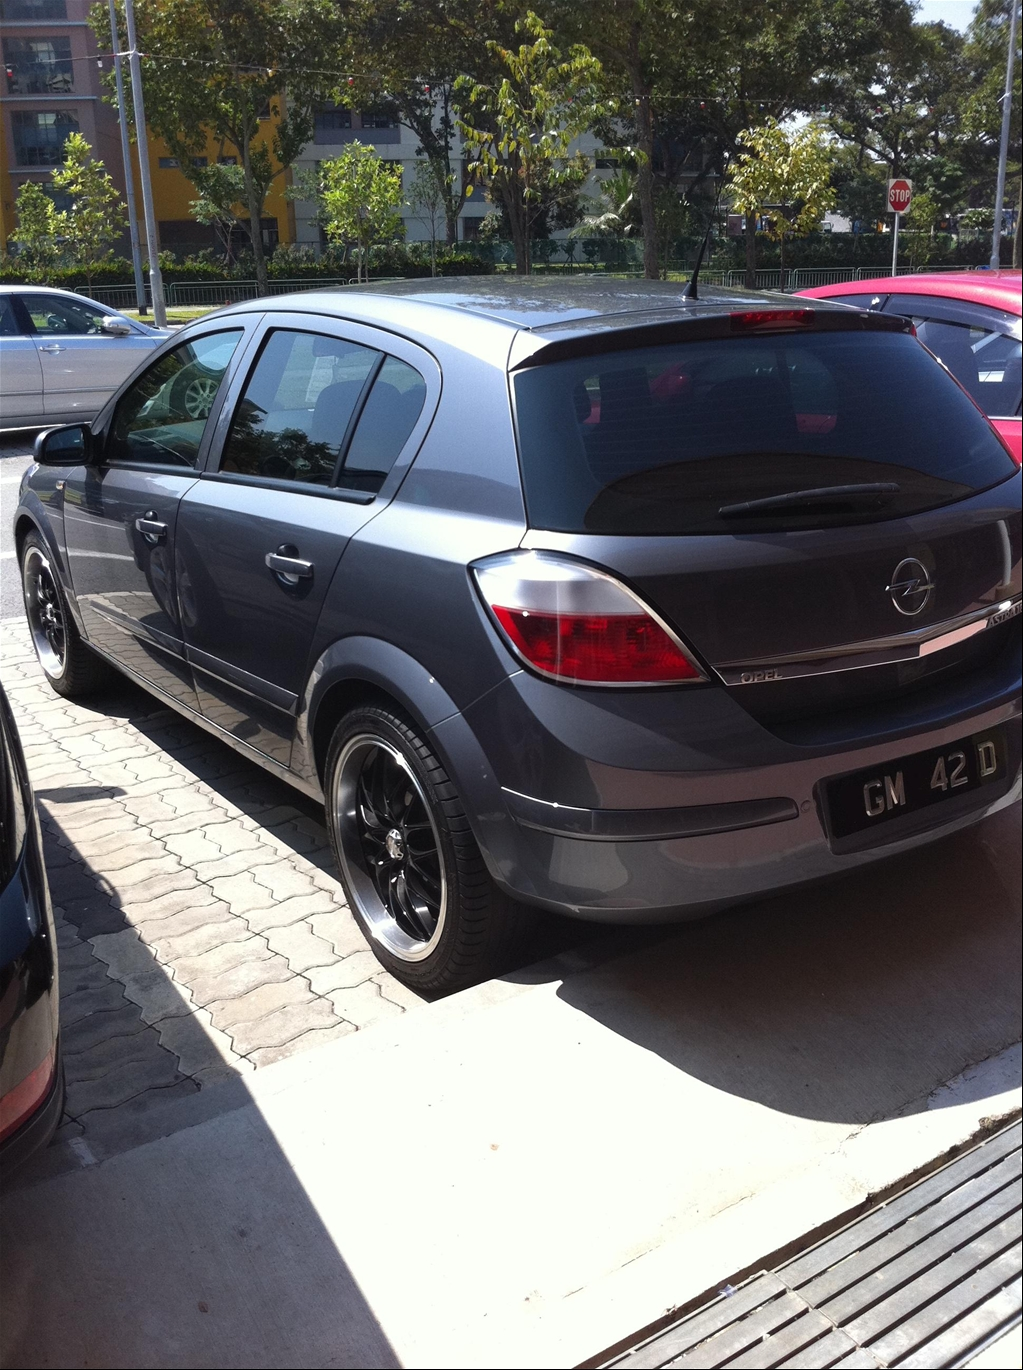 freddy astra 39 s 2006 opel astra in sarawak. Black Bedroom Furniture Sets. Home Design Ideas